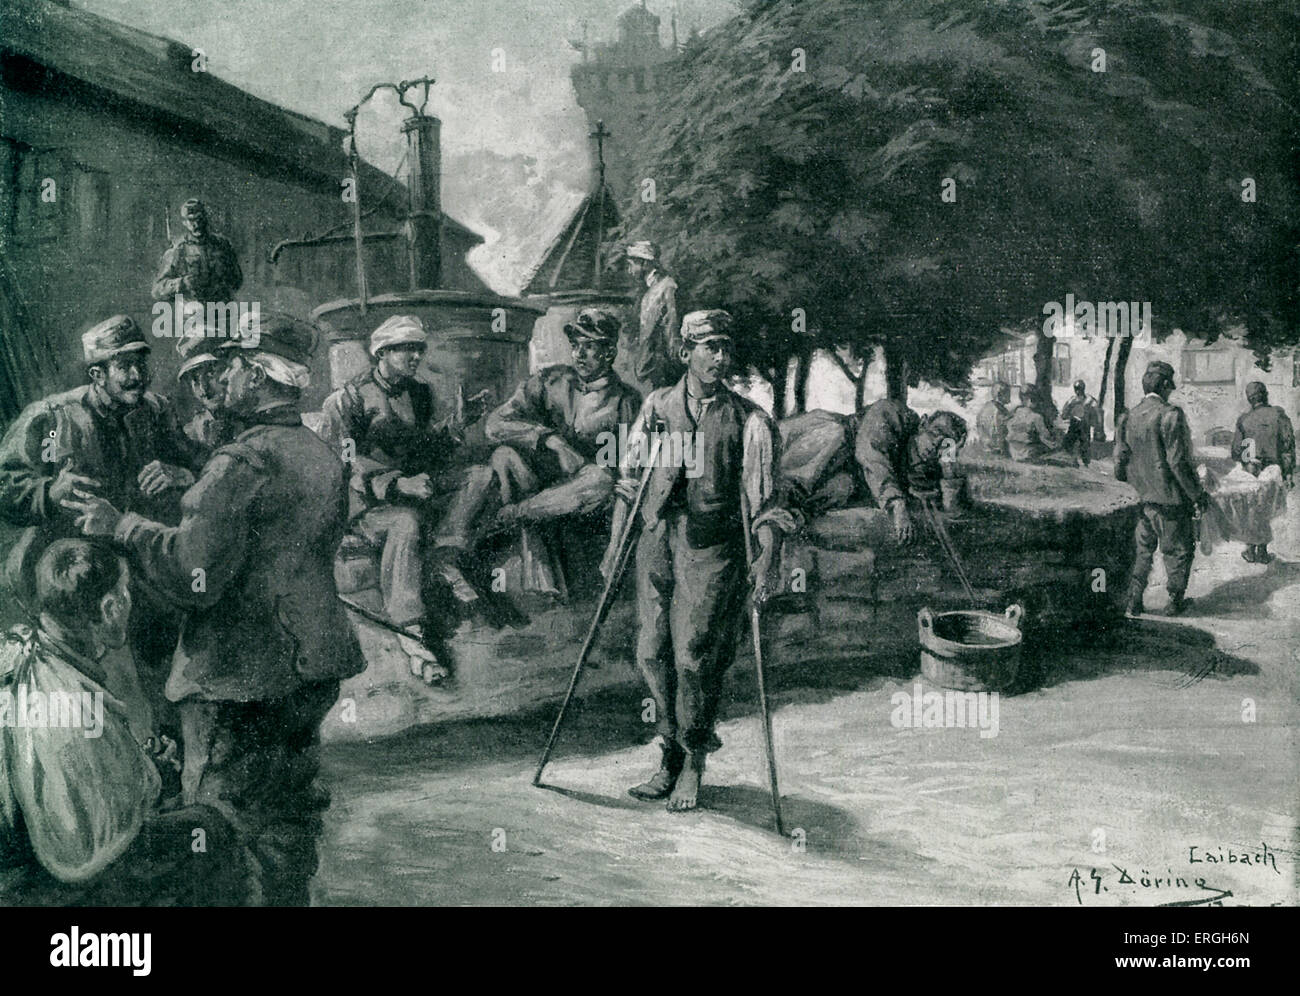 World War 1: Wounded Austro- Hungarian troops on the Italian Front. Illustration by Adolf G. Döring. November 1915 Stock Photo